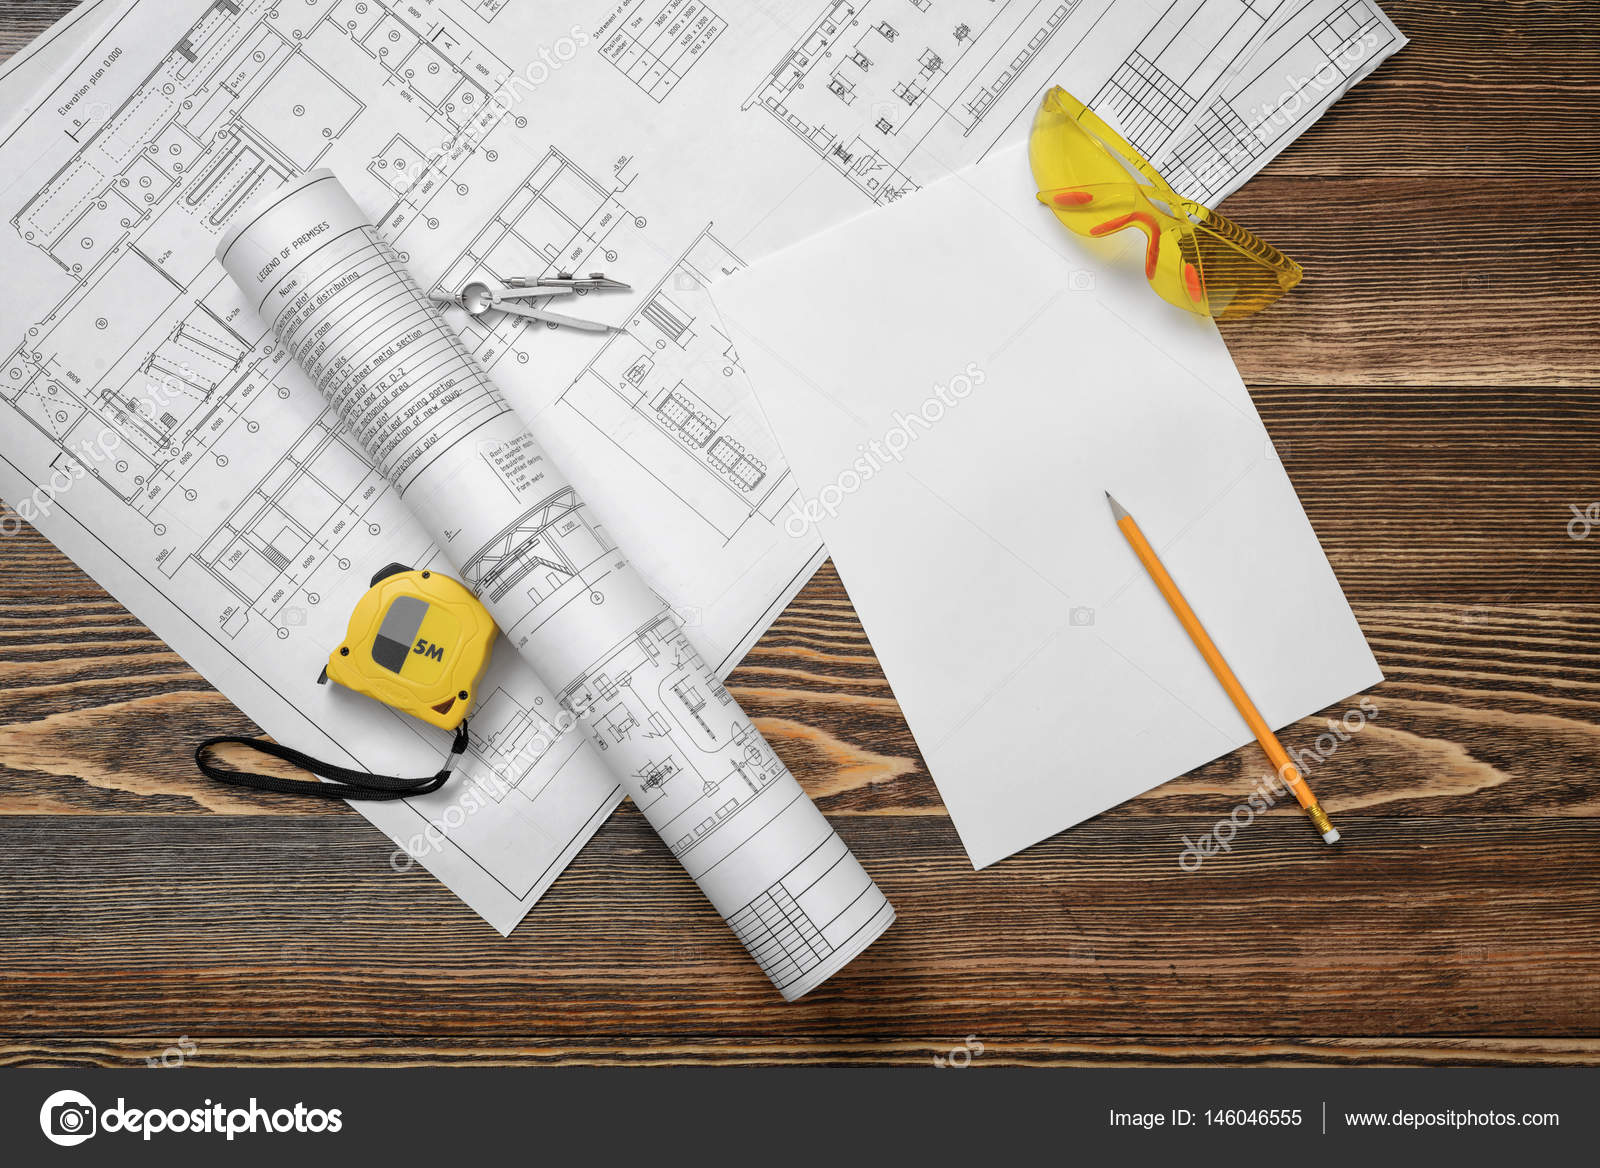 Blueprints pencil protective glasses steel tape pencil and white blueprints pencil protective glasses steel tape pencil and white paper lying on wooden table background construction and renovation malvernweather Gallery